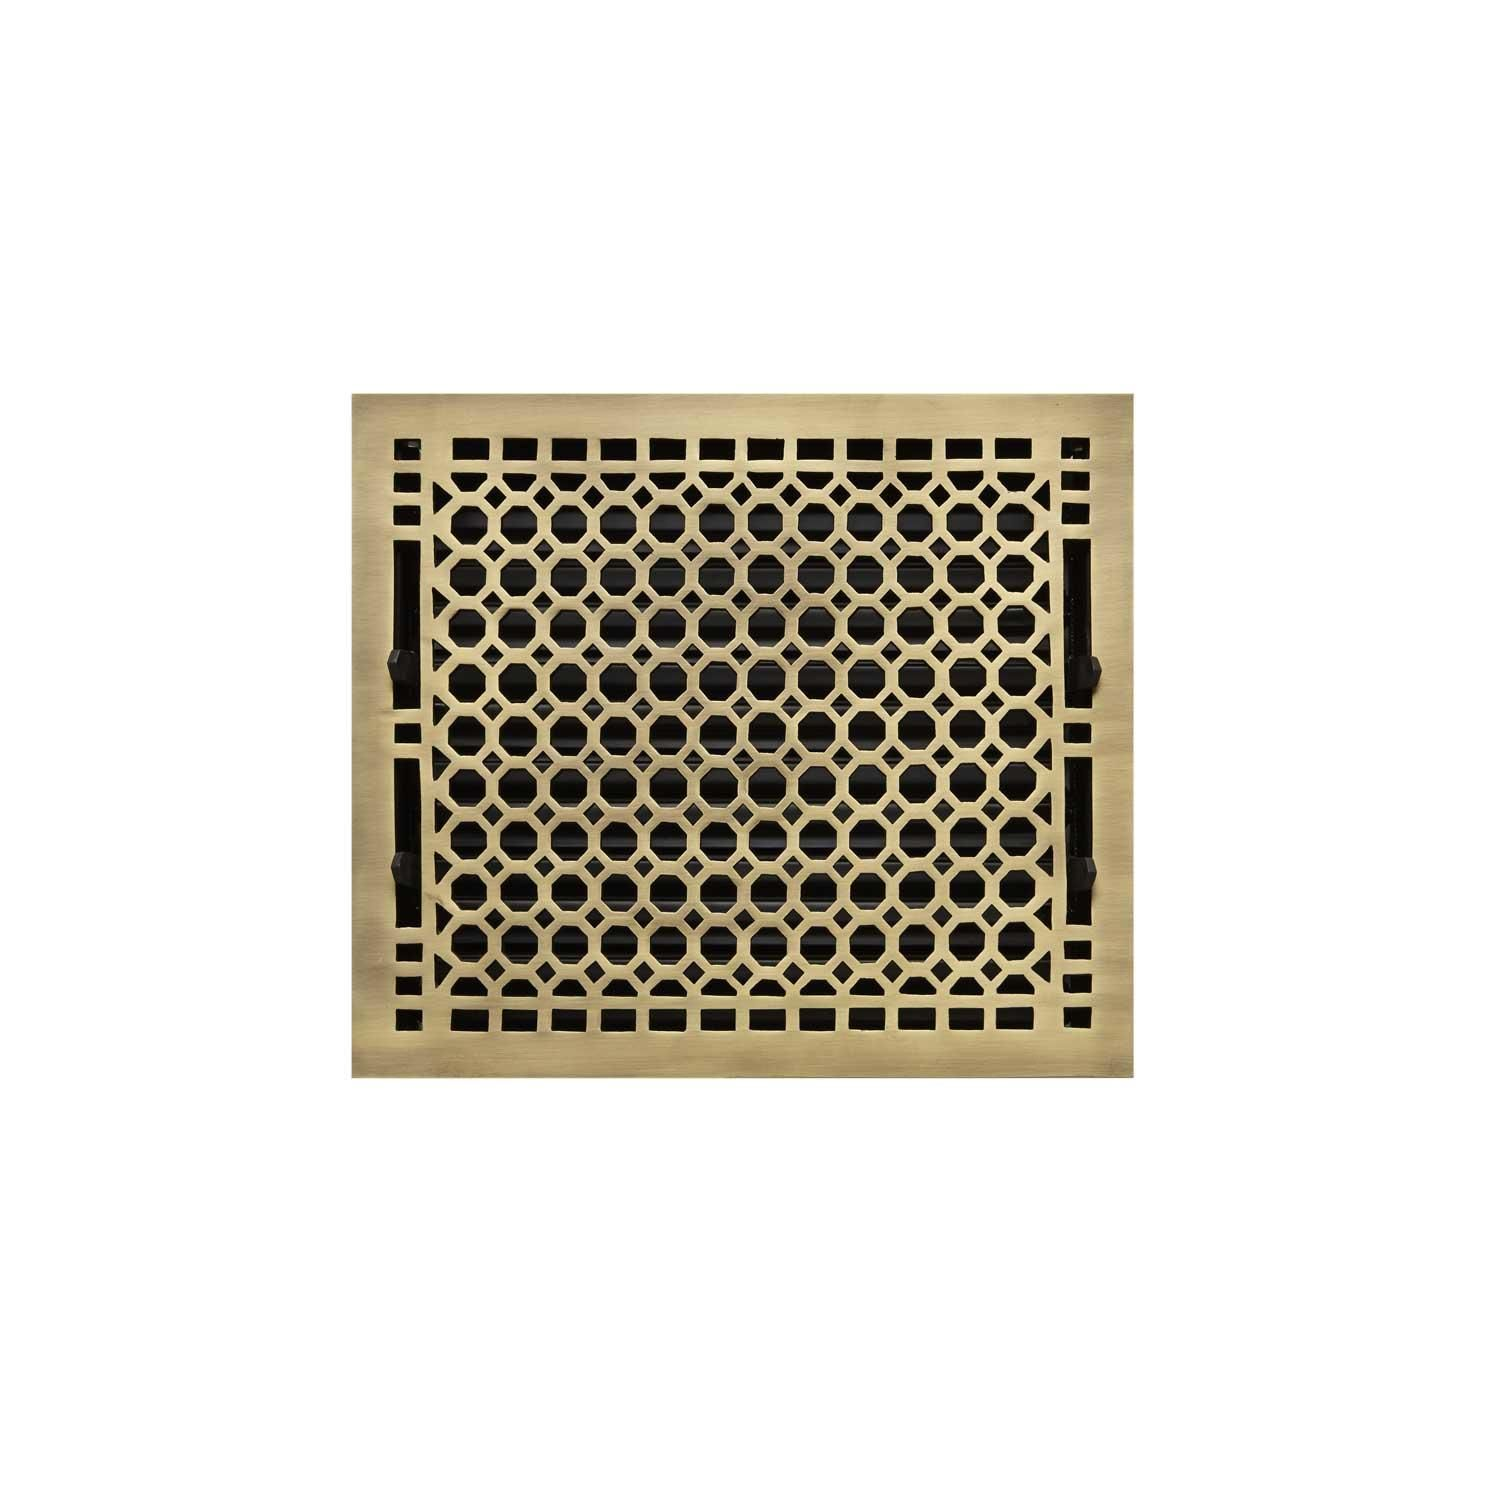 Honeycomb Brass Floor Register Antique Brass 10 X12 11 X13 3 8 Overall Floor Registers Wall Registers Signature Hardware